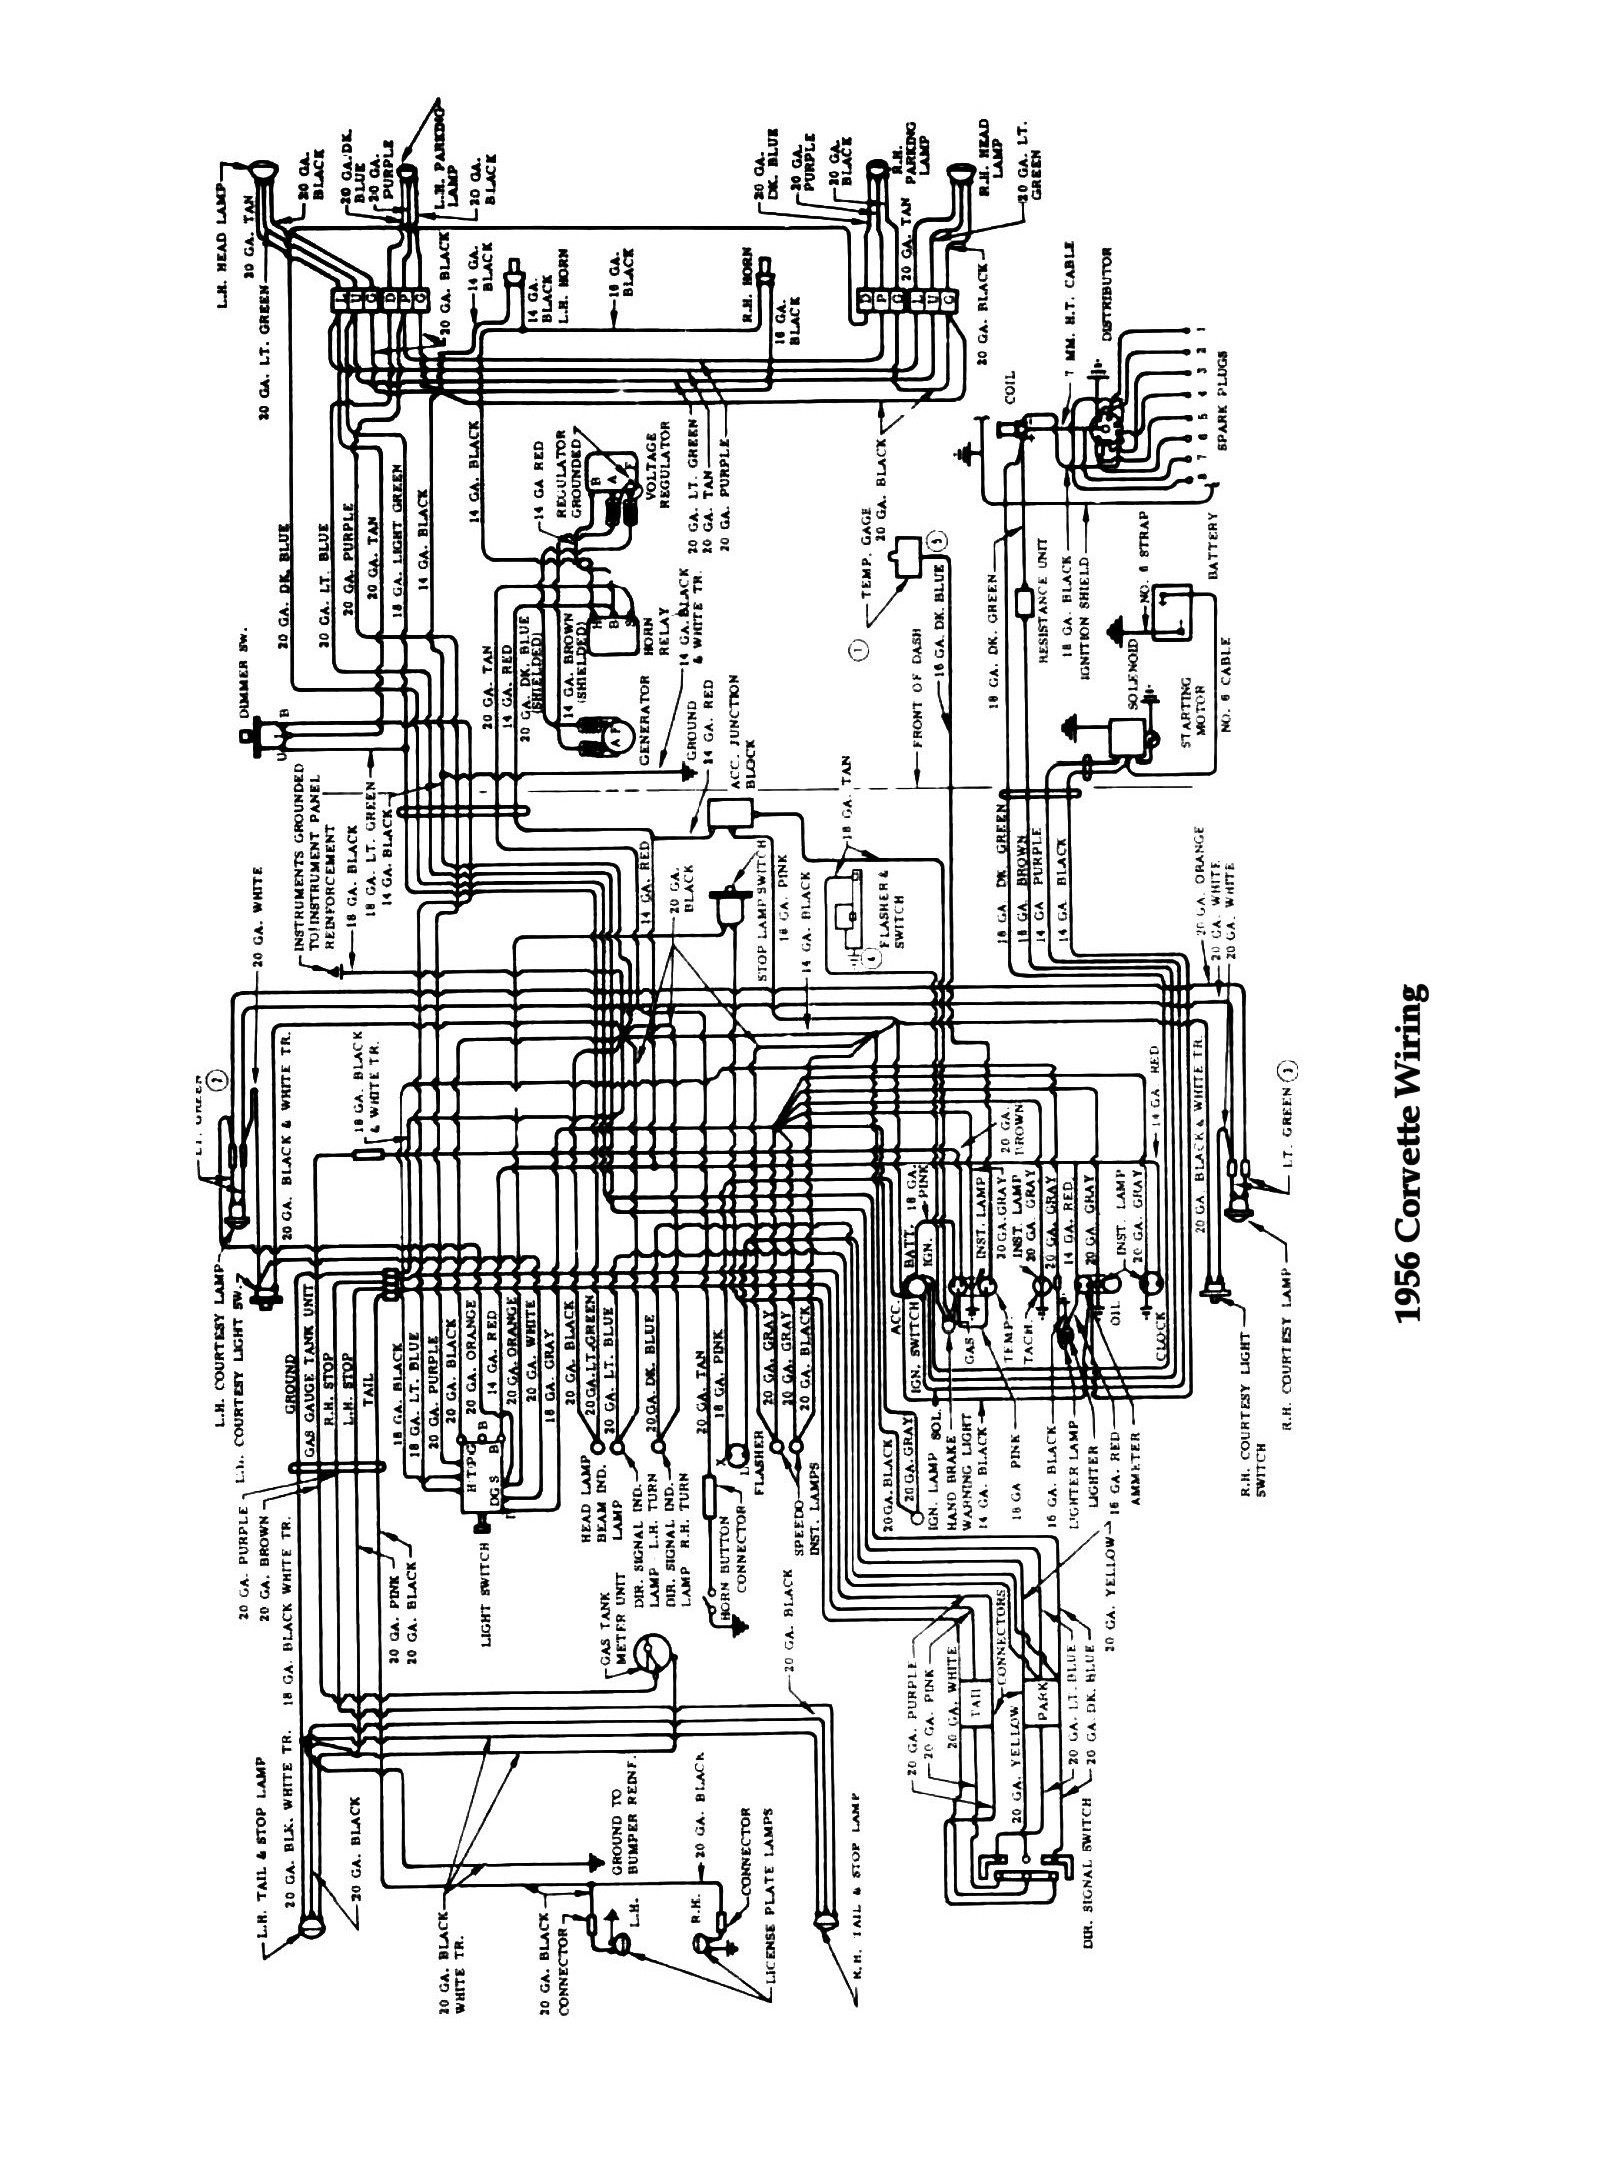 1959 Corvette Engine Diagram Not Lossing Wiring 1980 Interior Data Schema Rh 45 Diehoehle Derloewen De Battery